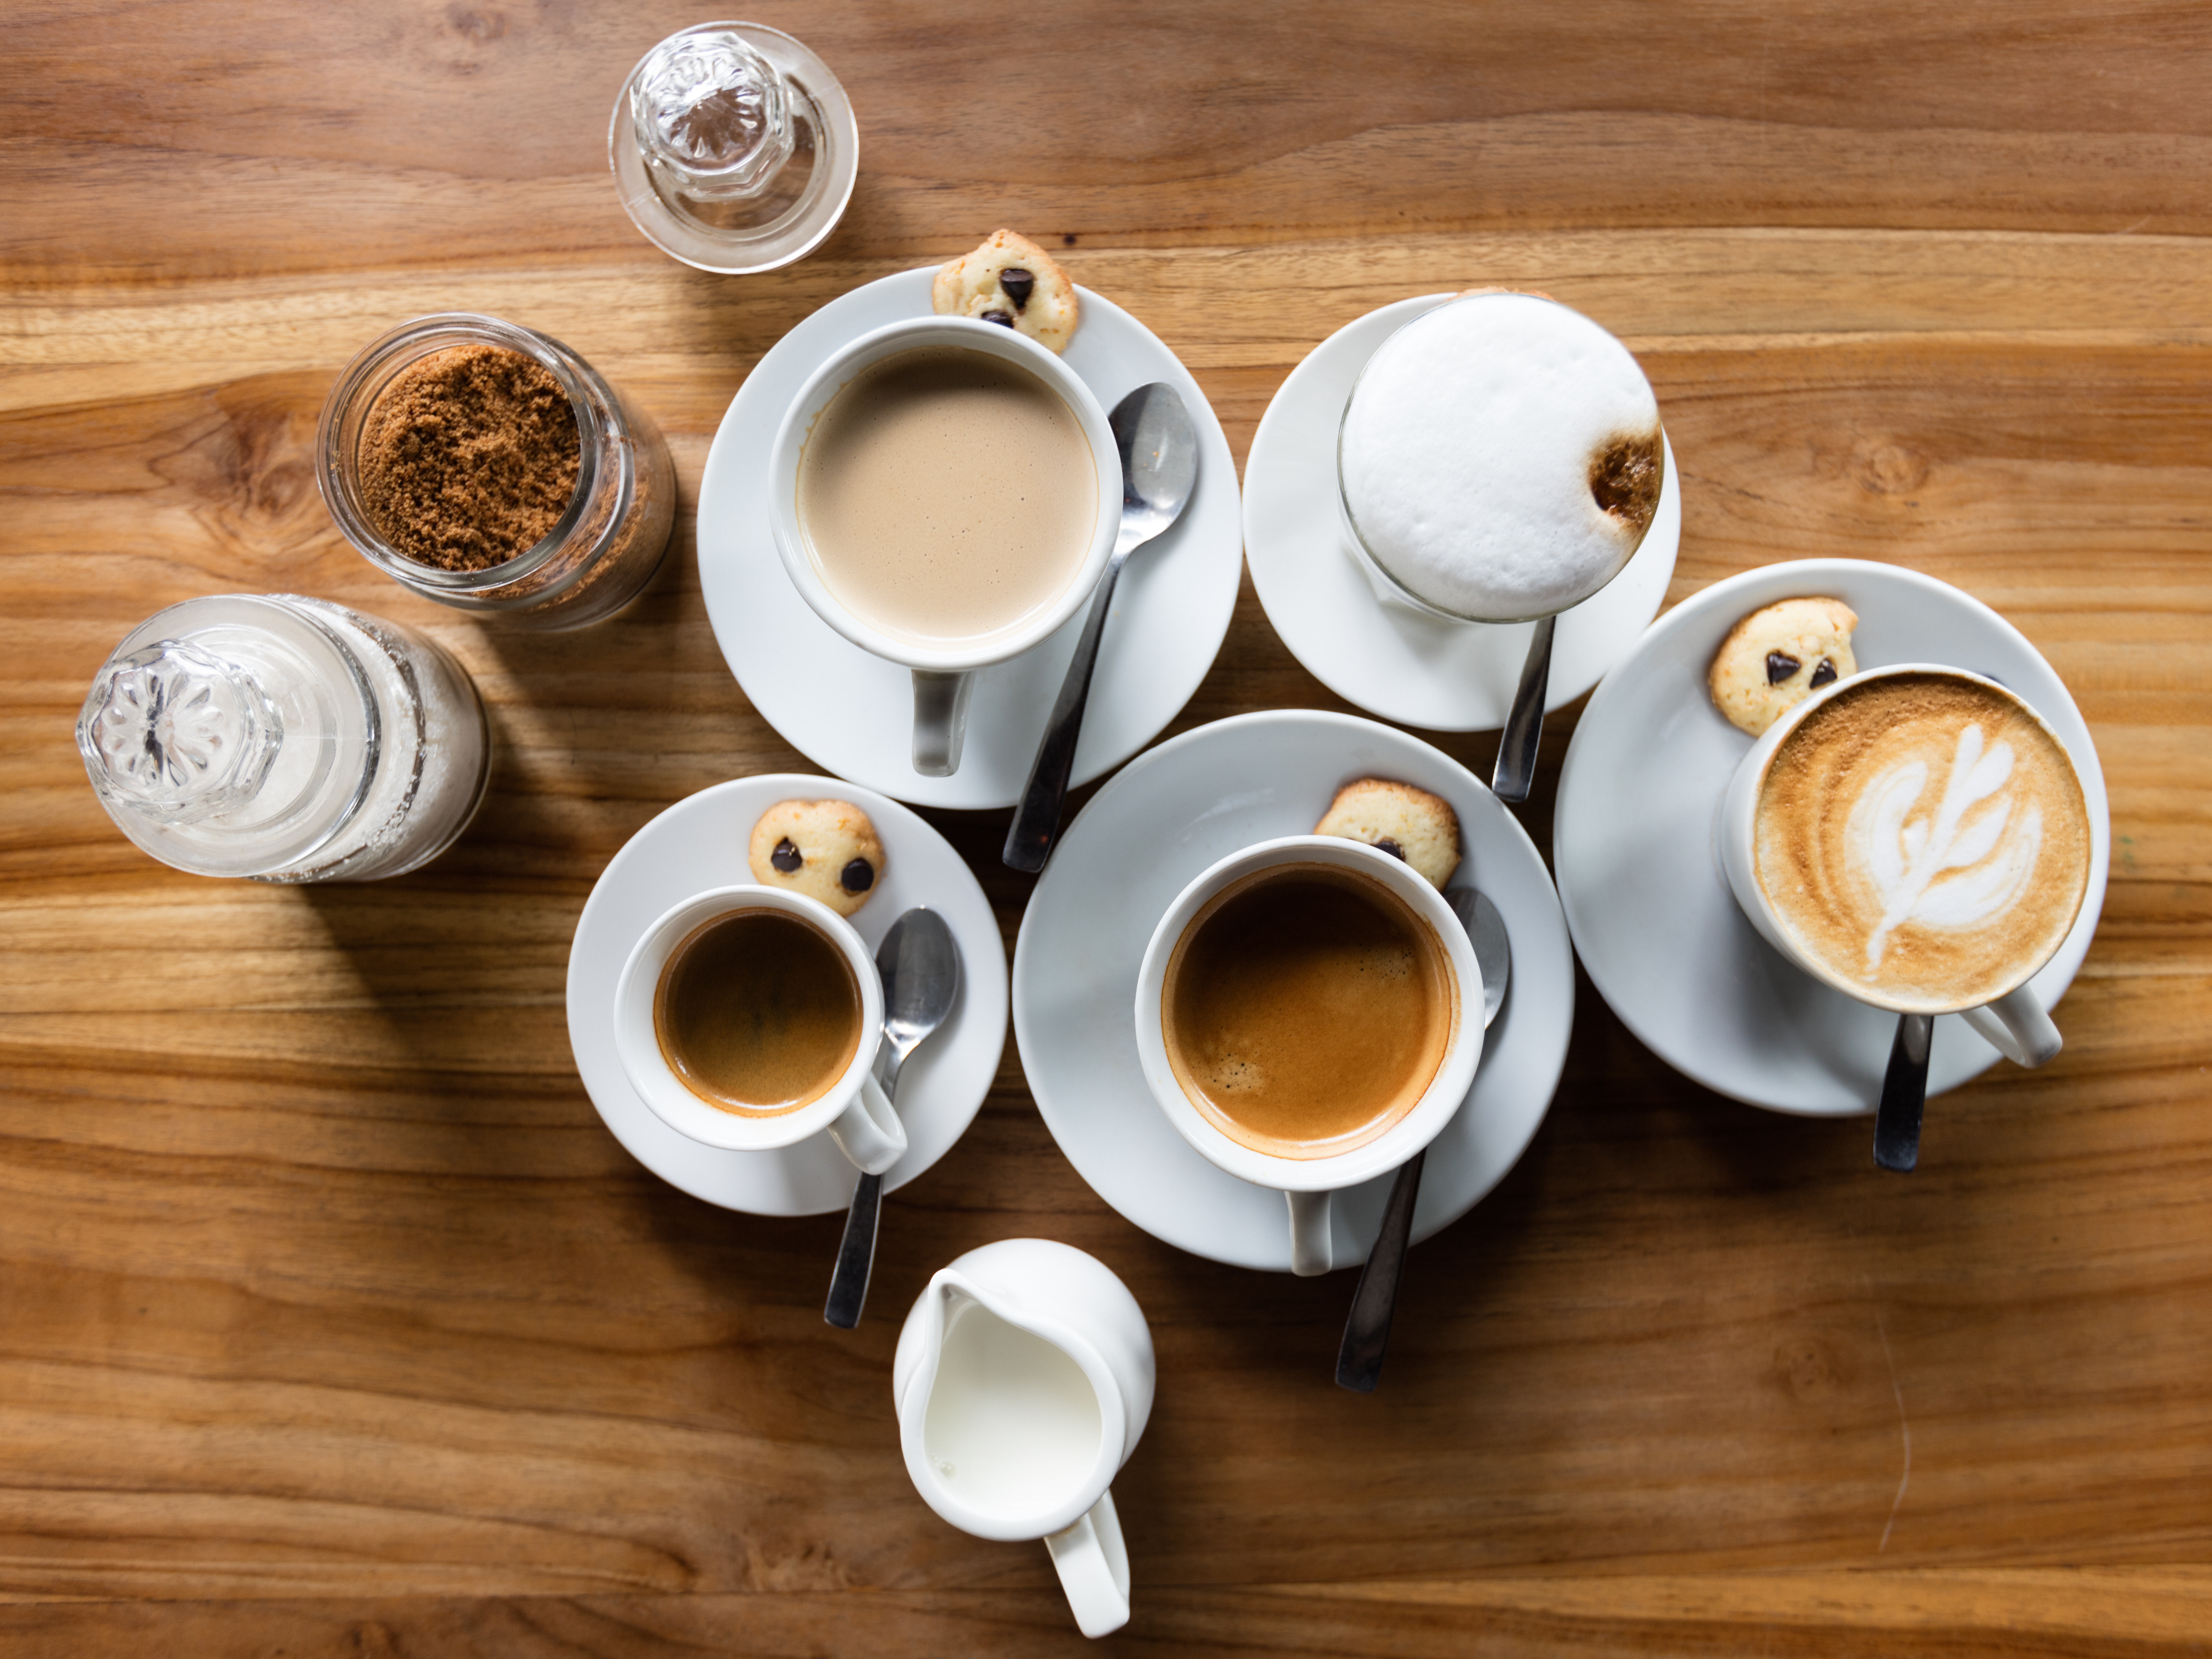 An overhead shot of five white cups with various kinds of coffee